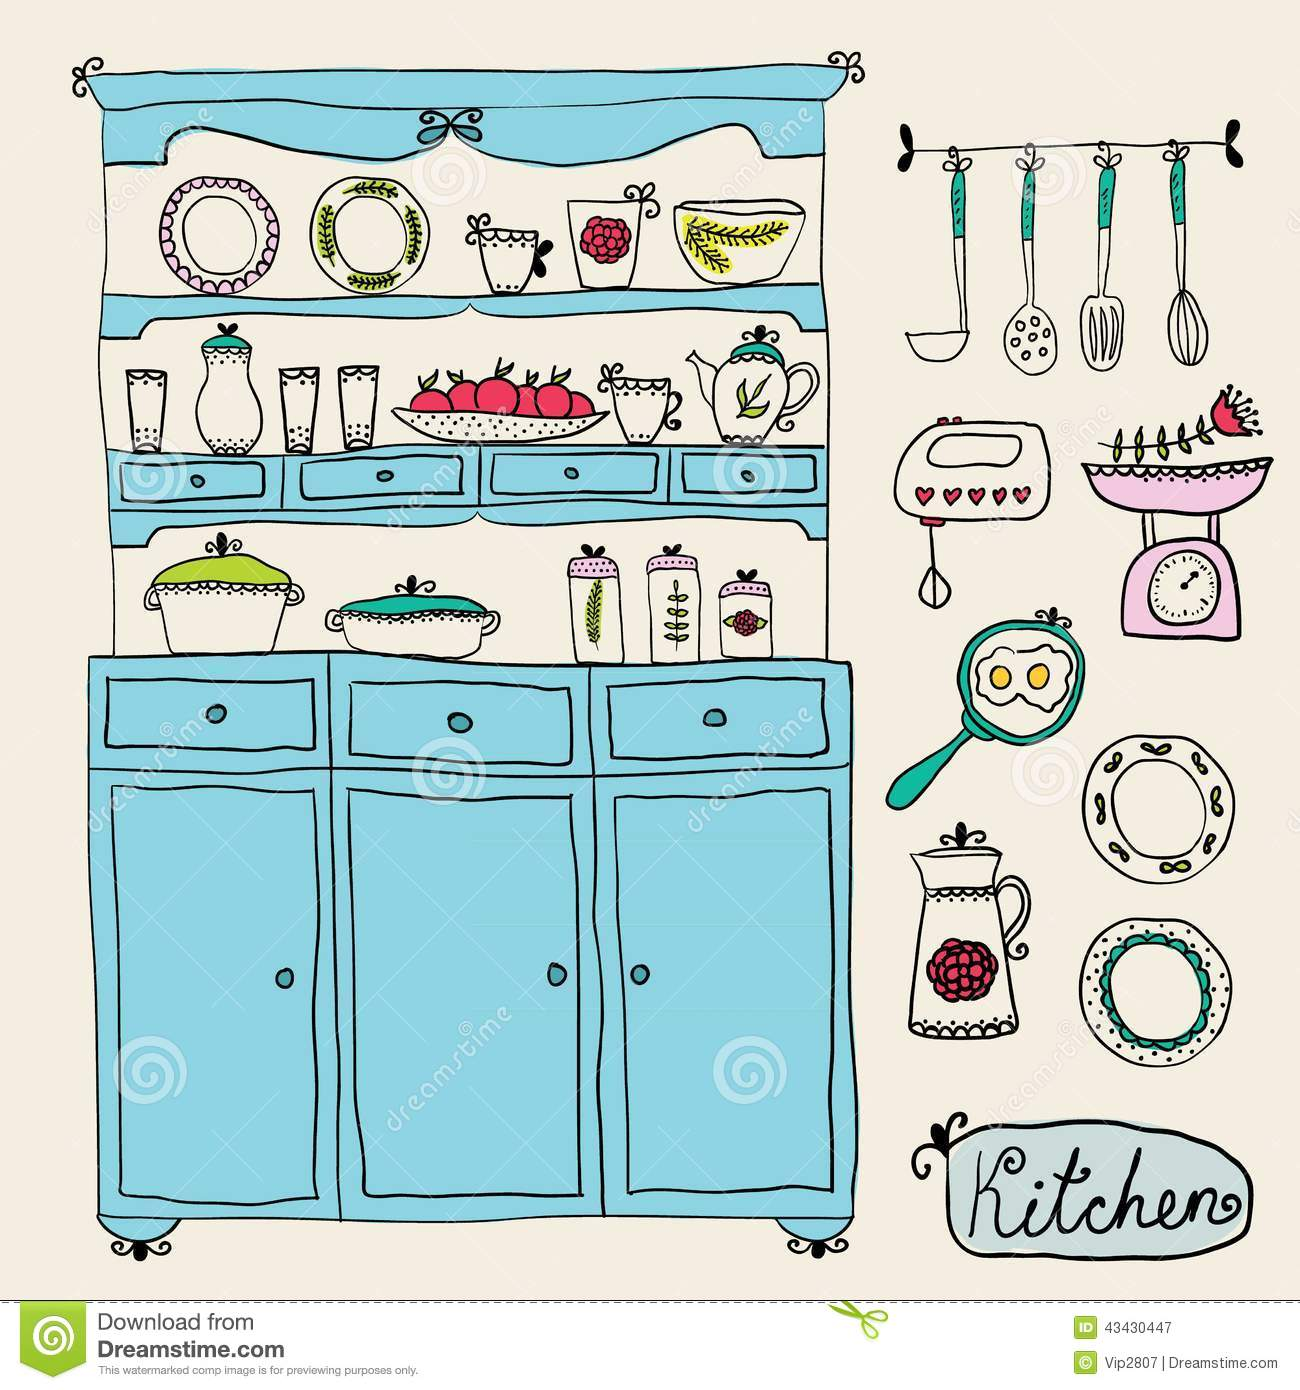 Kitchen Set In Design Elements Of Kitchen Stock Illustration Image 43430447